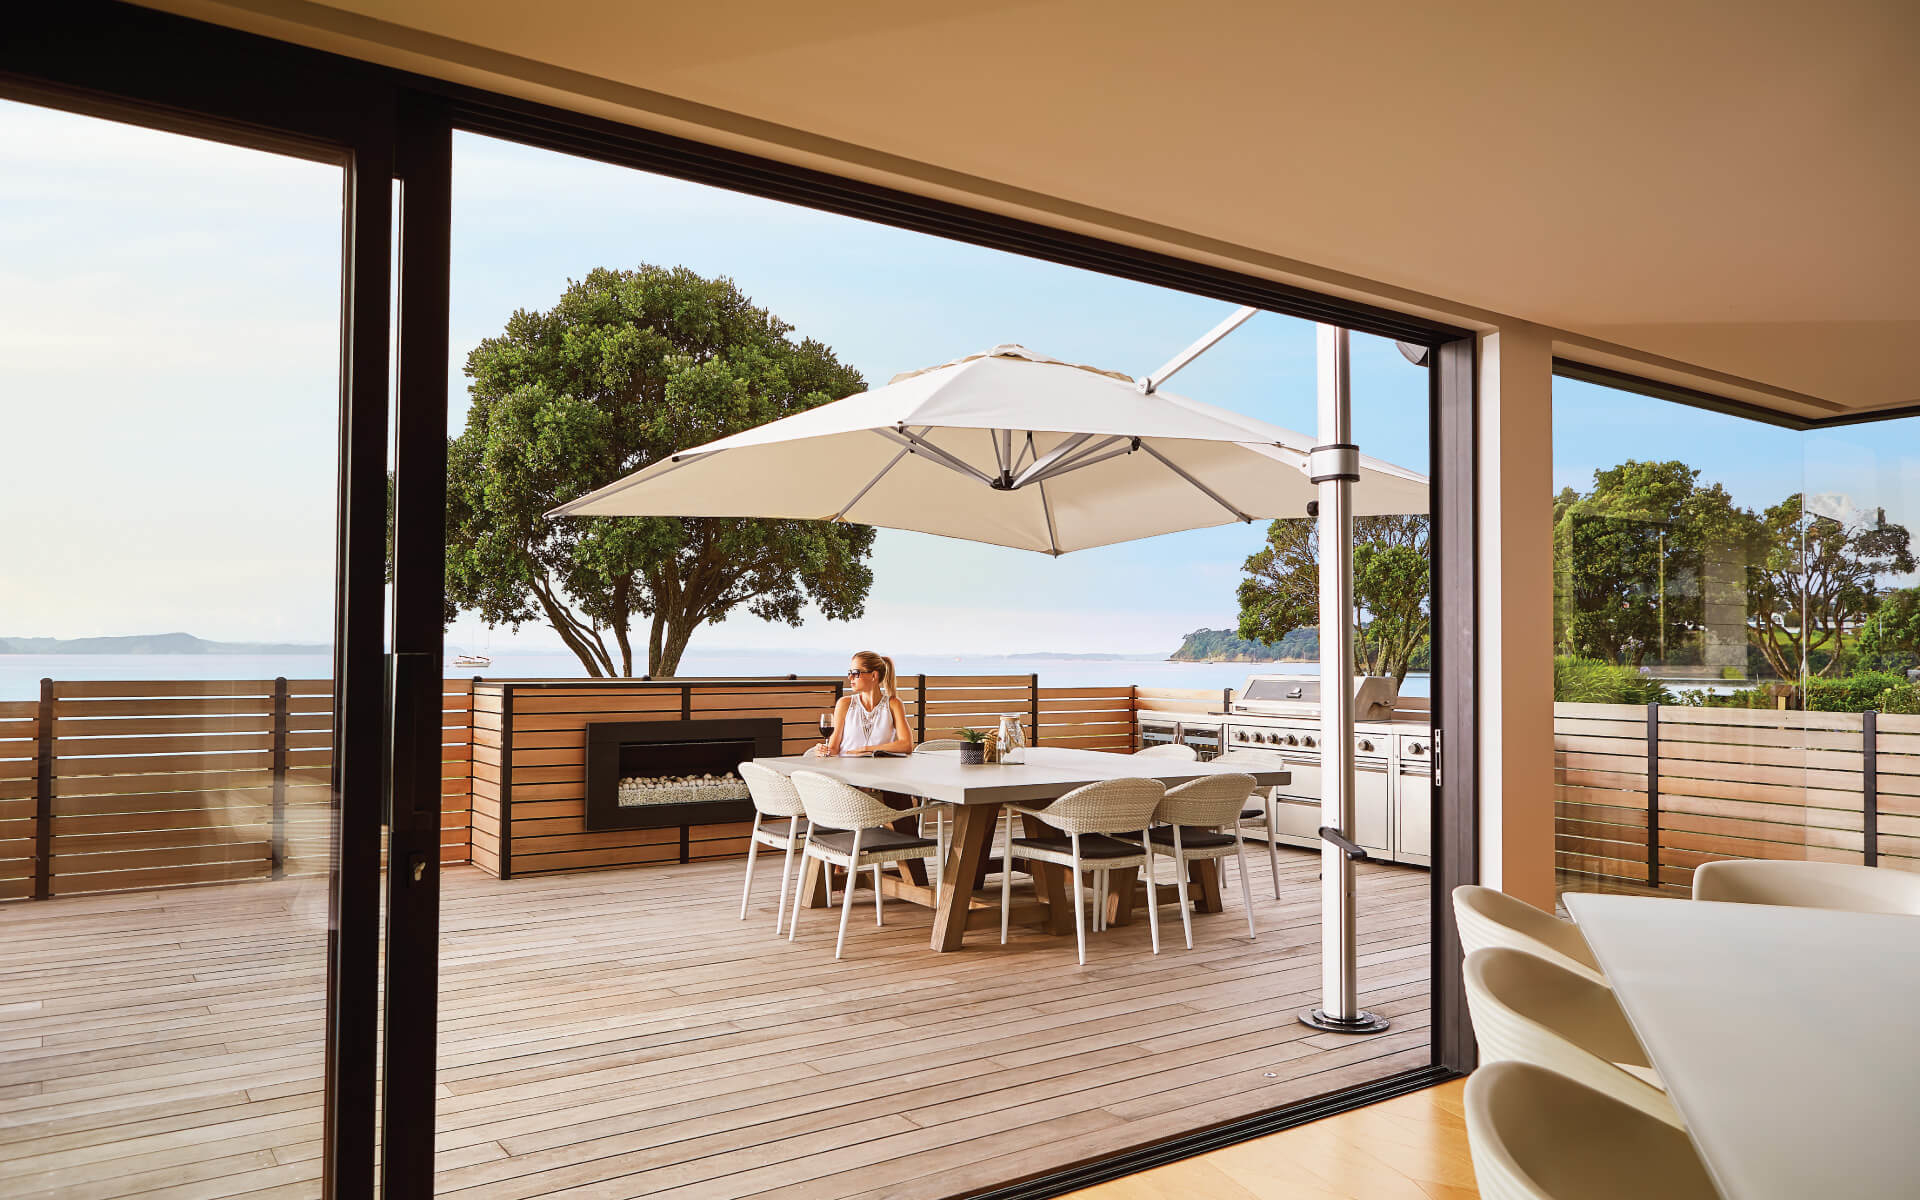 Riviera Cantilever Shade Umbrella for NZ Wooden Deck